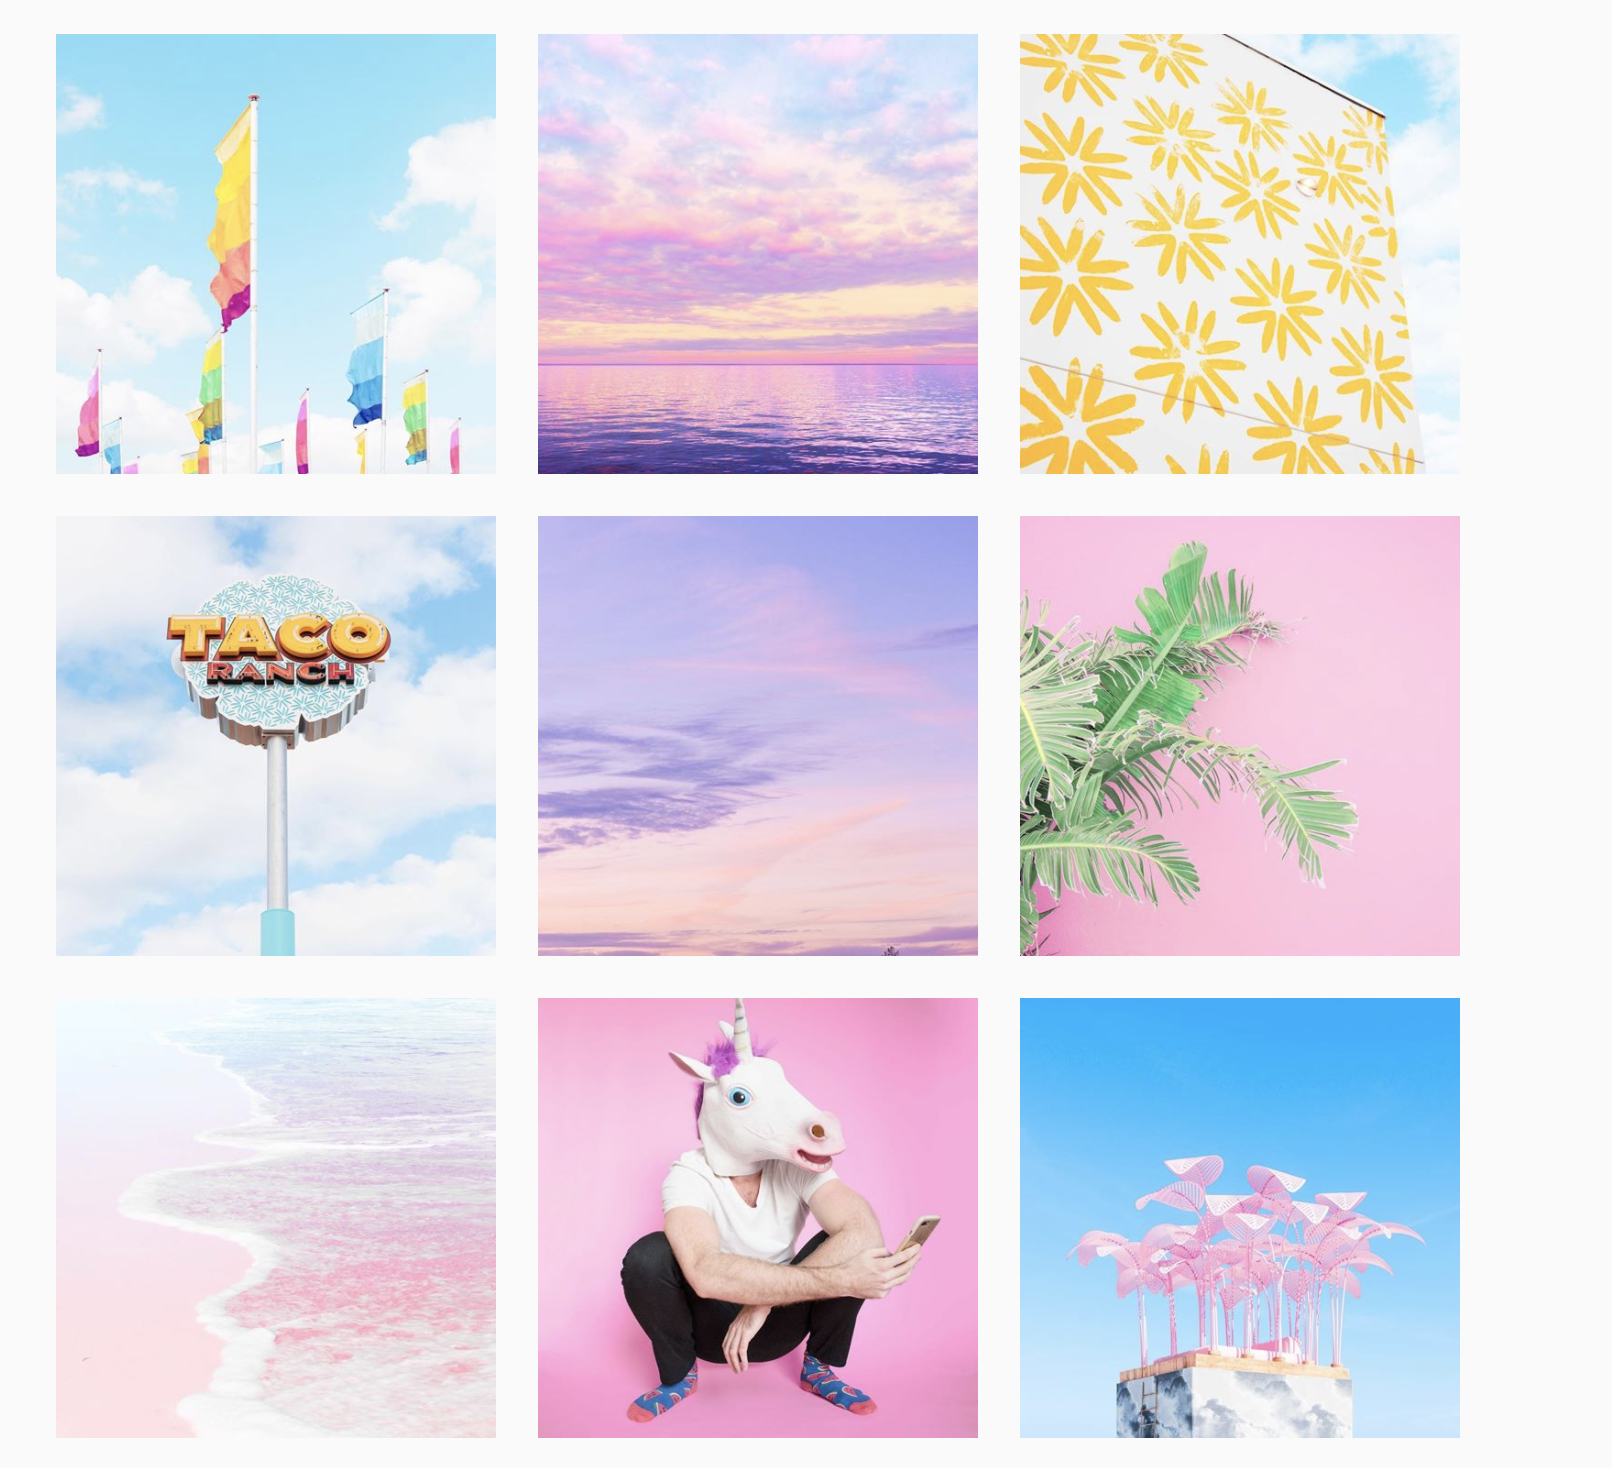 Instagram Feed Ideas: Pastels - Schedugram